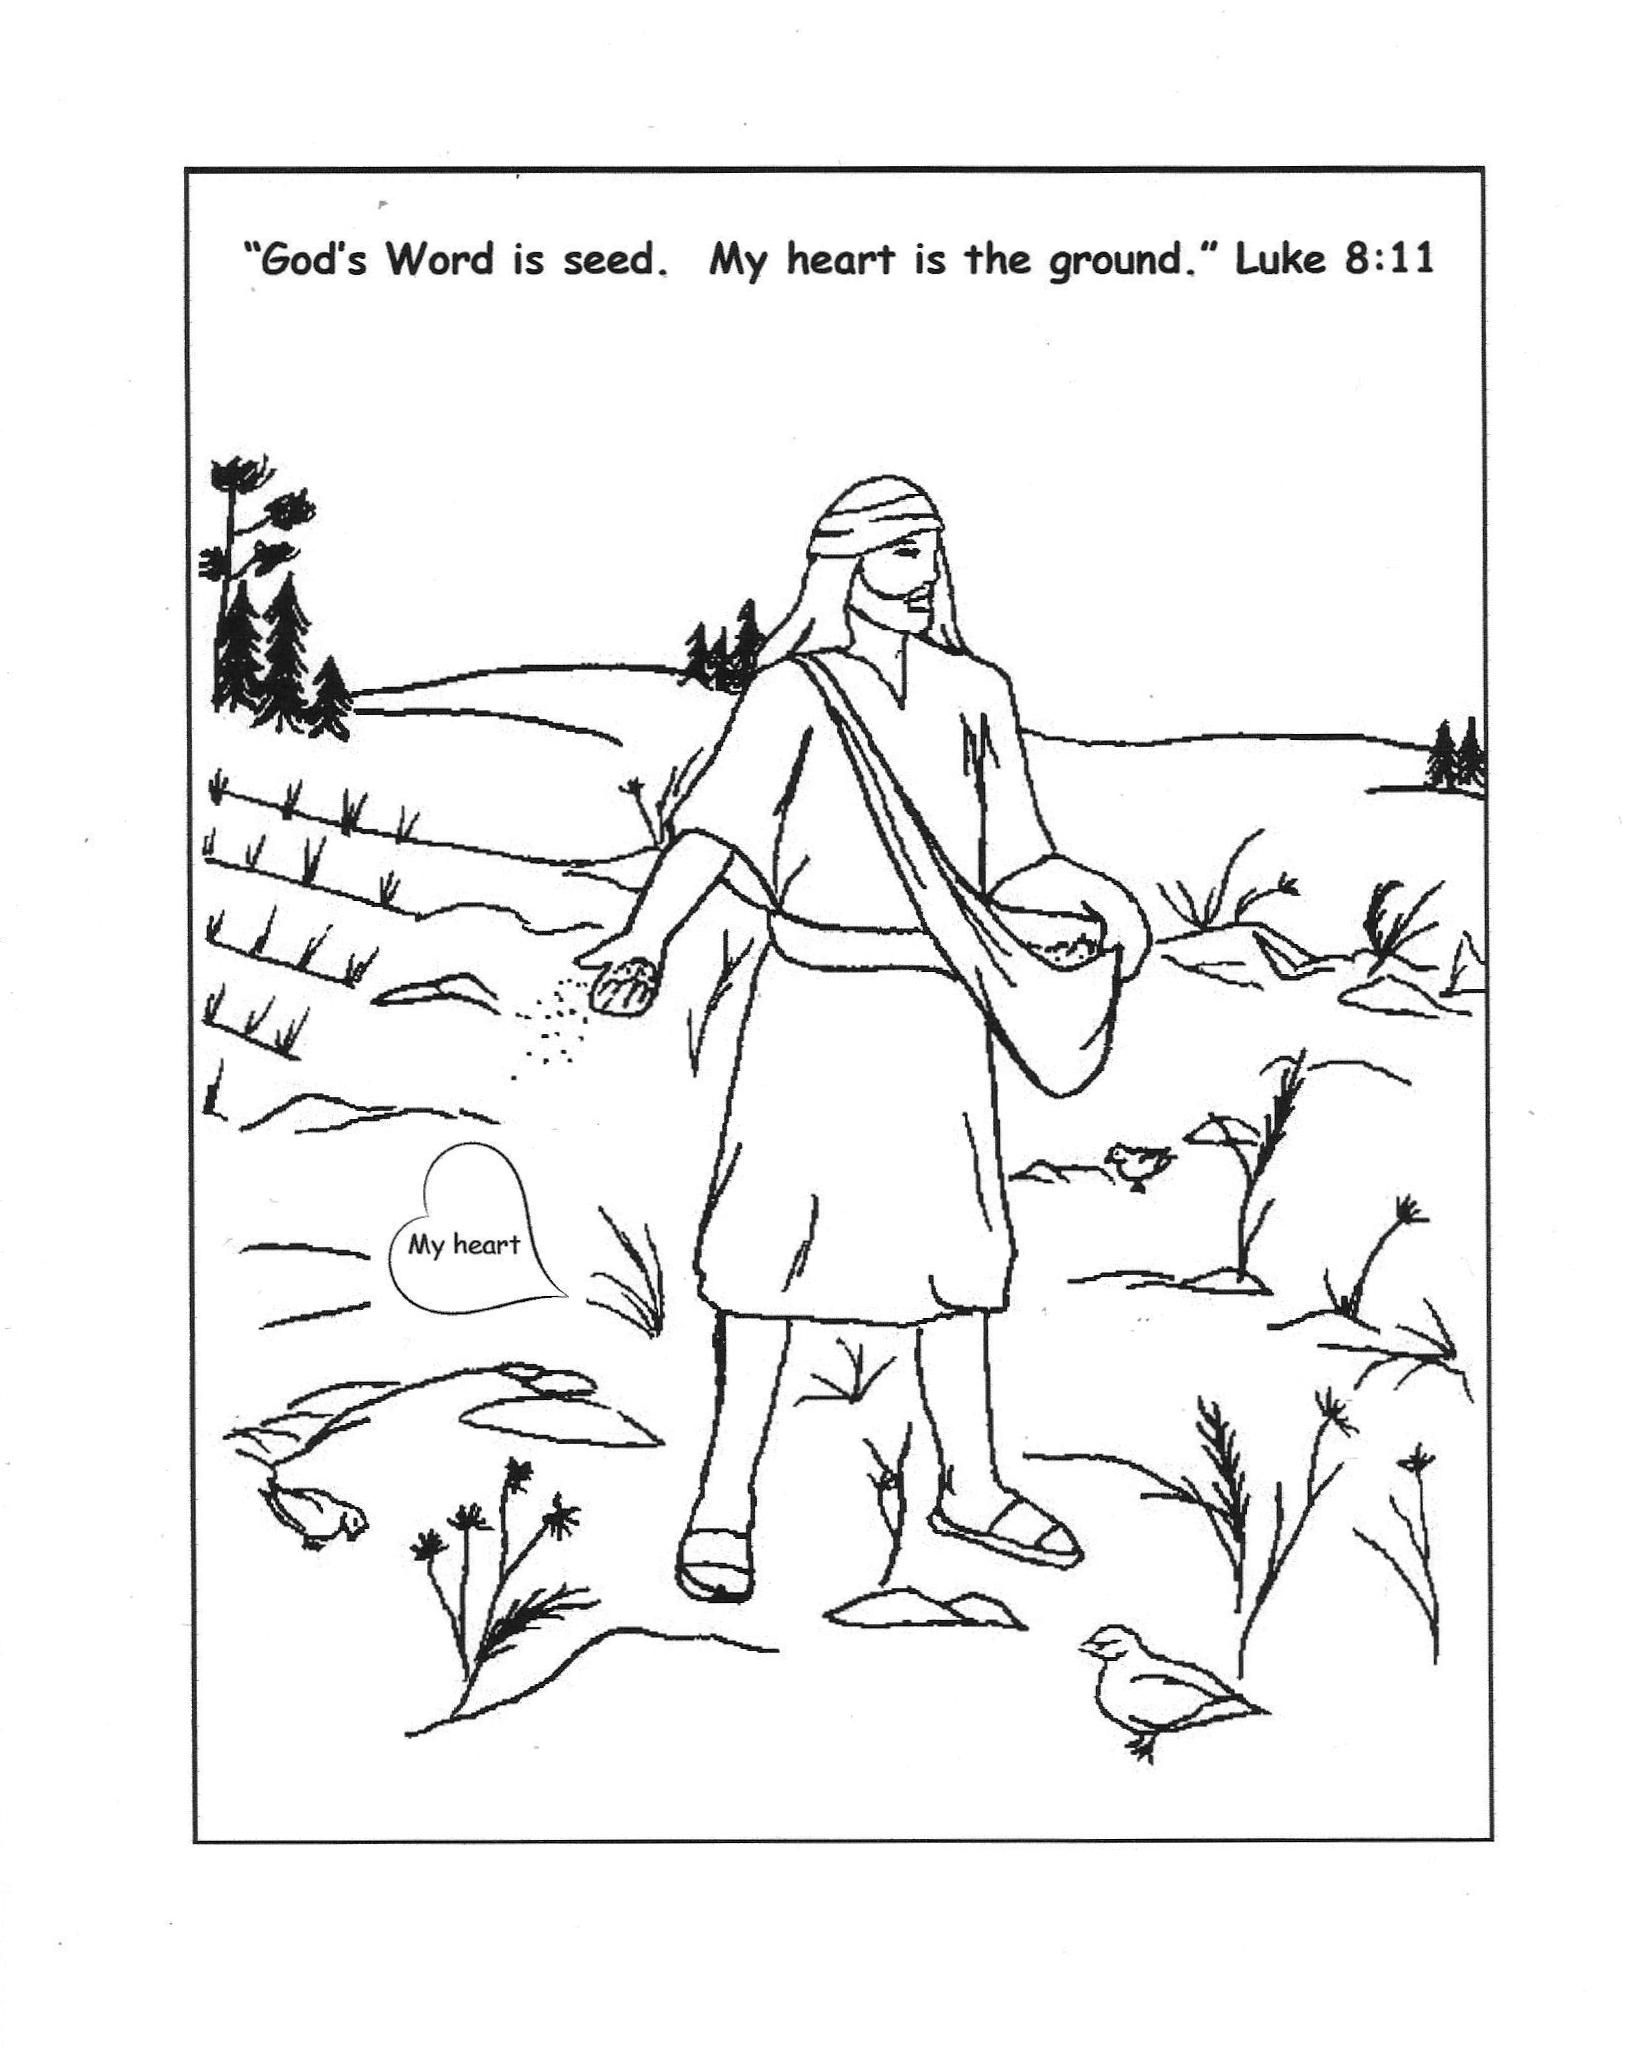 Coloring Sheet For Parable Of Good Seed Luke 8 5 Sunday School